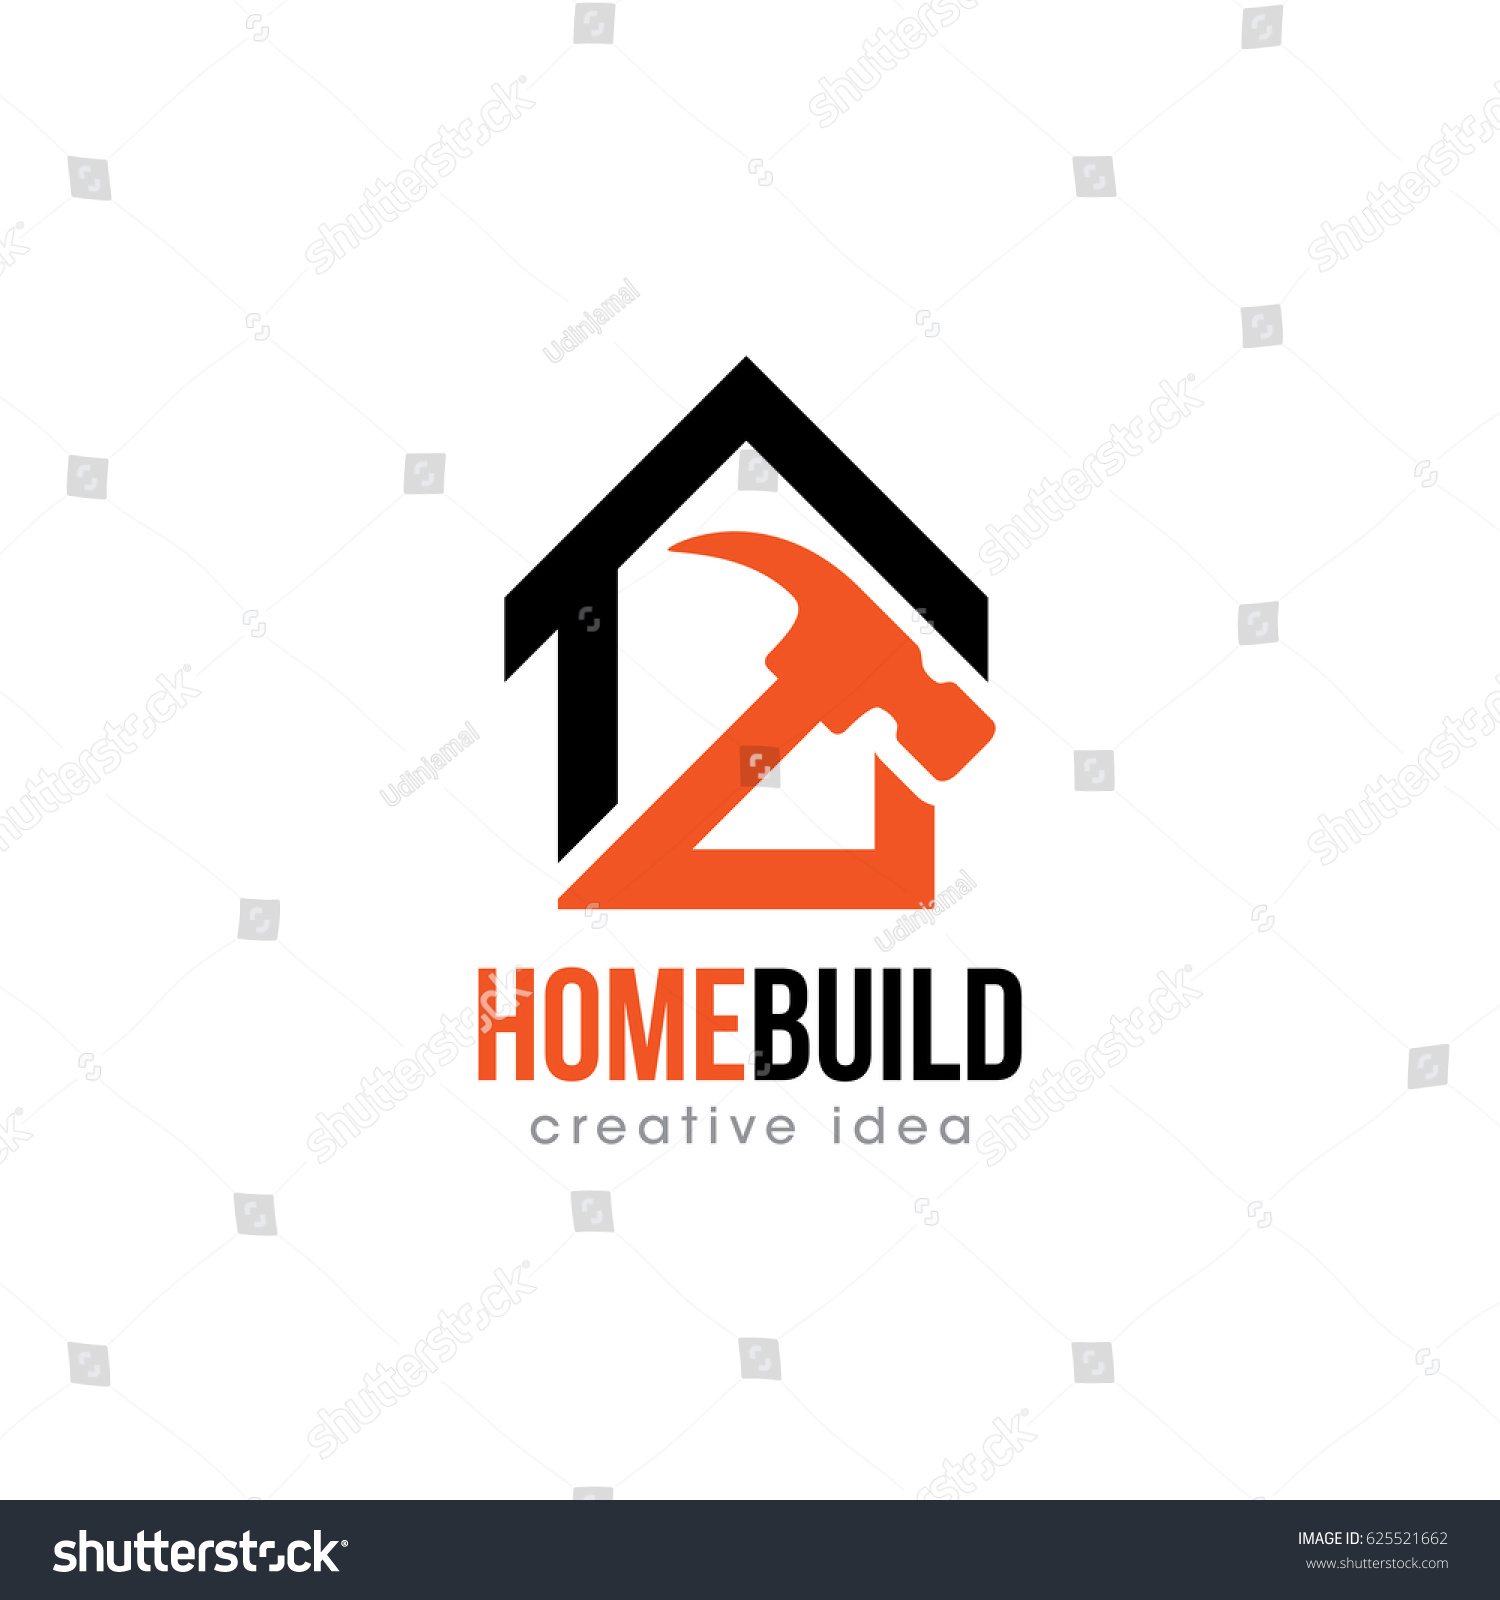 Creative Home Construction Concept Logo Design Stock Vector ...